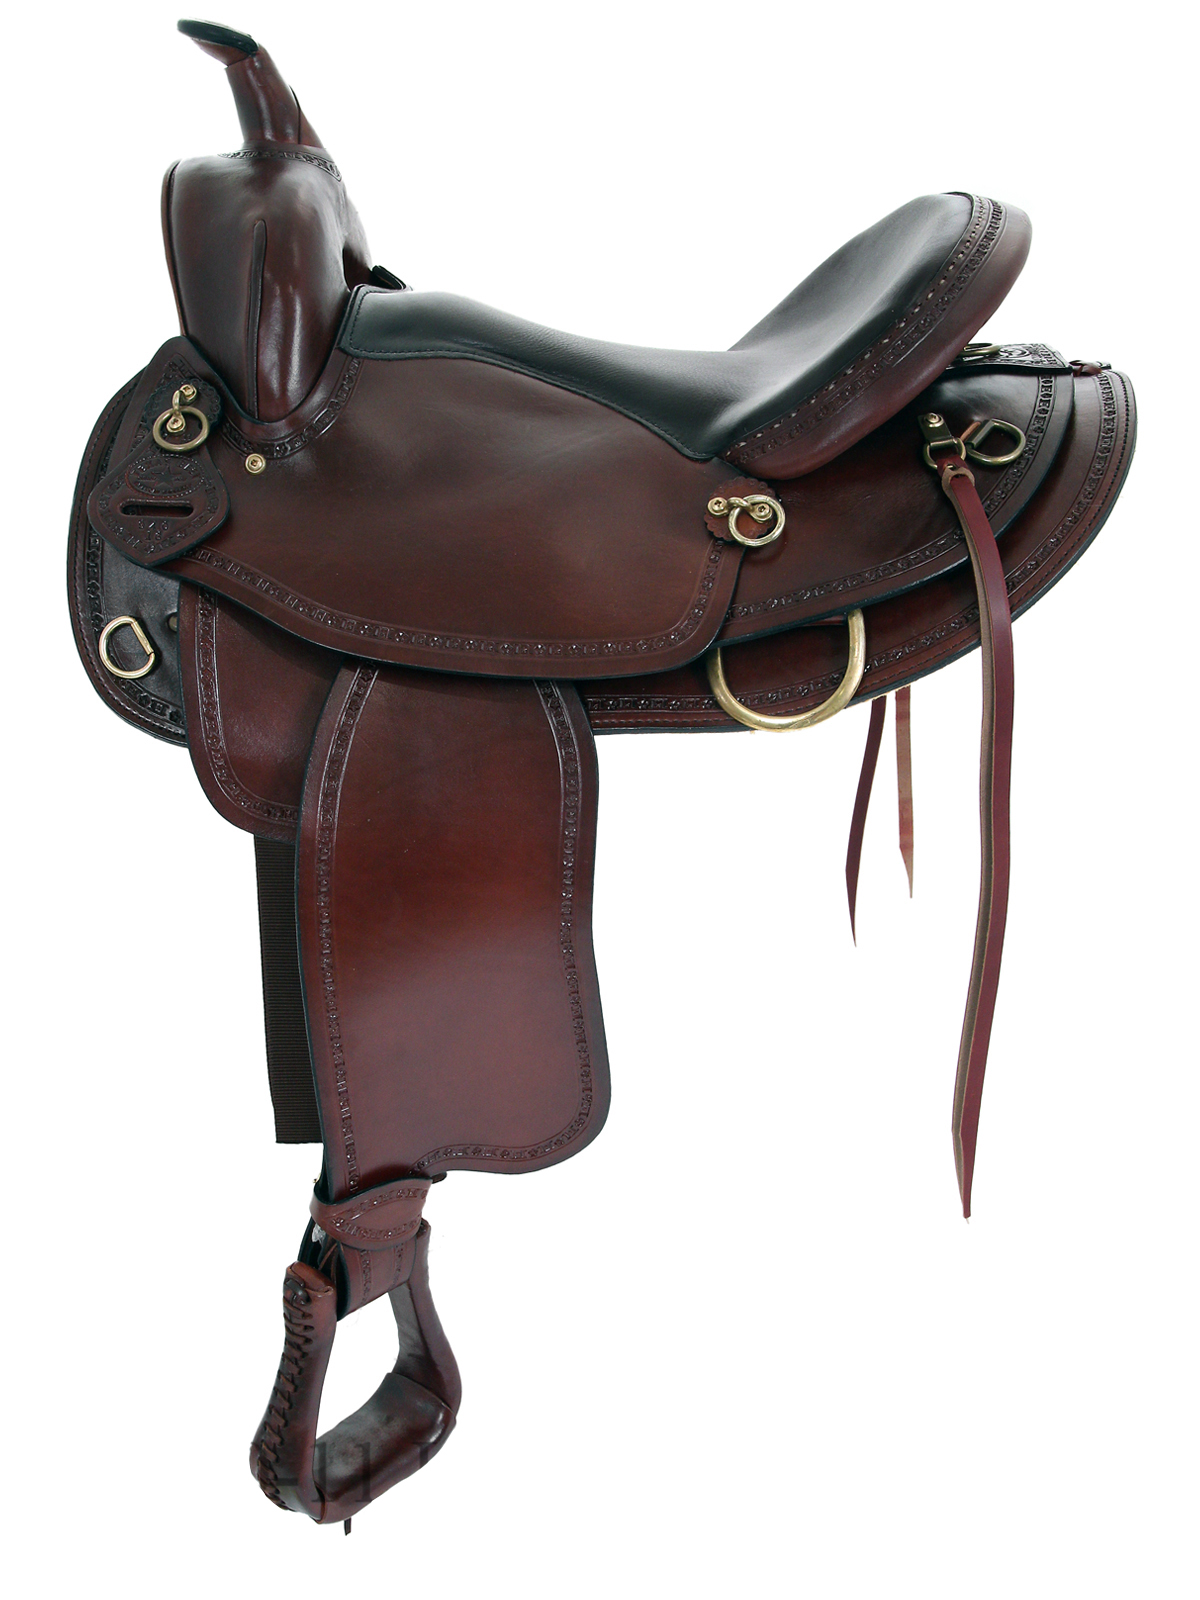 16inch 17inch Big Horn Texas Best Hill Country Trail II Saddle